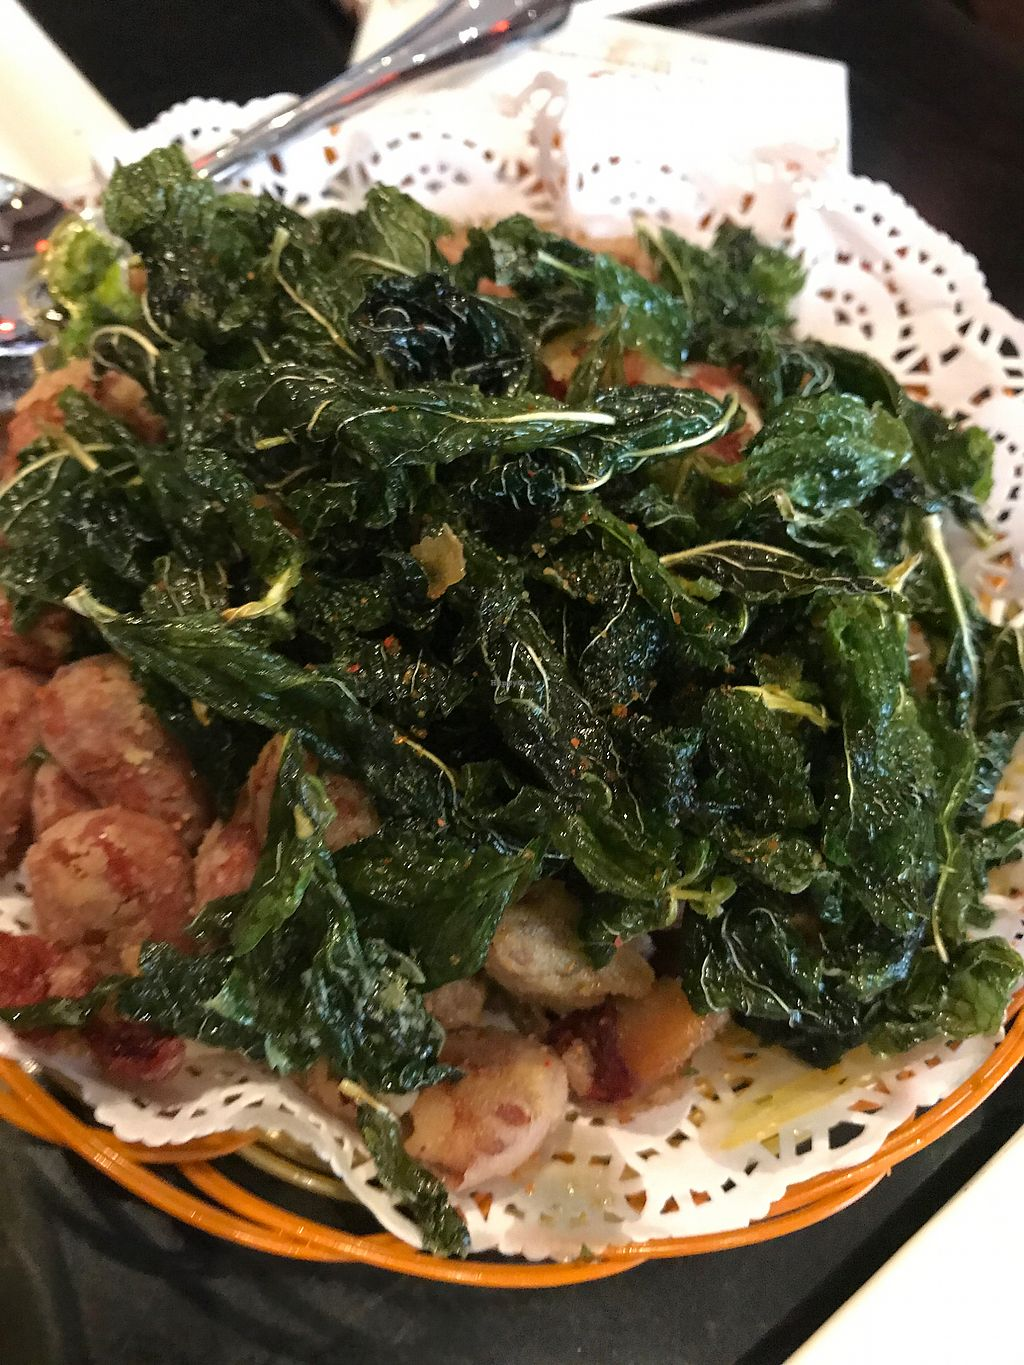 """Photo of Shan Ding Dong Ren - Caveman Vegetarian Teahouse  by <a href=""""/members/profile/VeganRambo"""">VeganRambo</a> <br/>Fried tea leaves and beans, so yummy  <br/> July 19, 2017  - <a href='/contact/abuse/image/18363/281995'>Report</a>"""